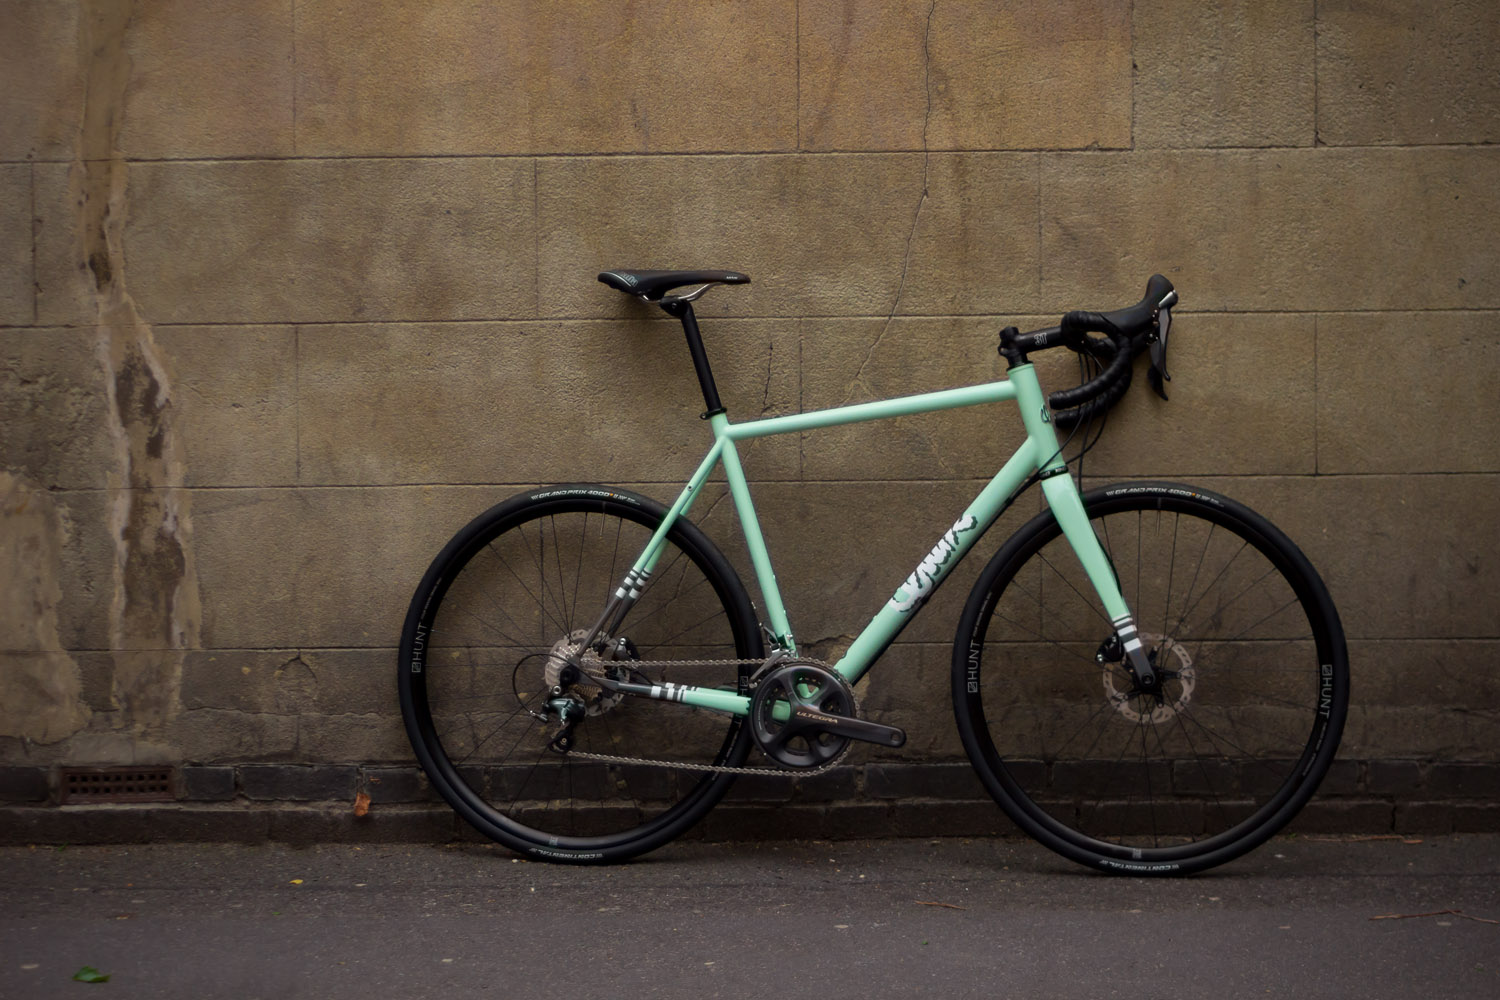 quirk_cycles_brendans_all_road_web_0010.jpg